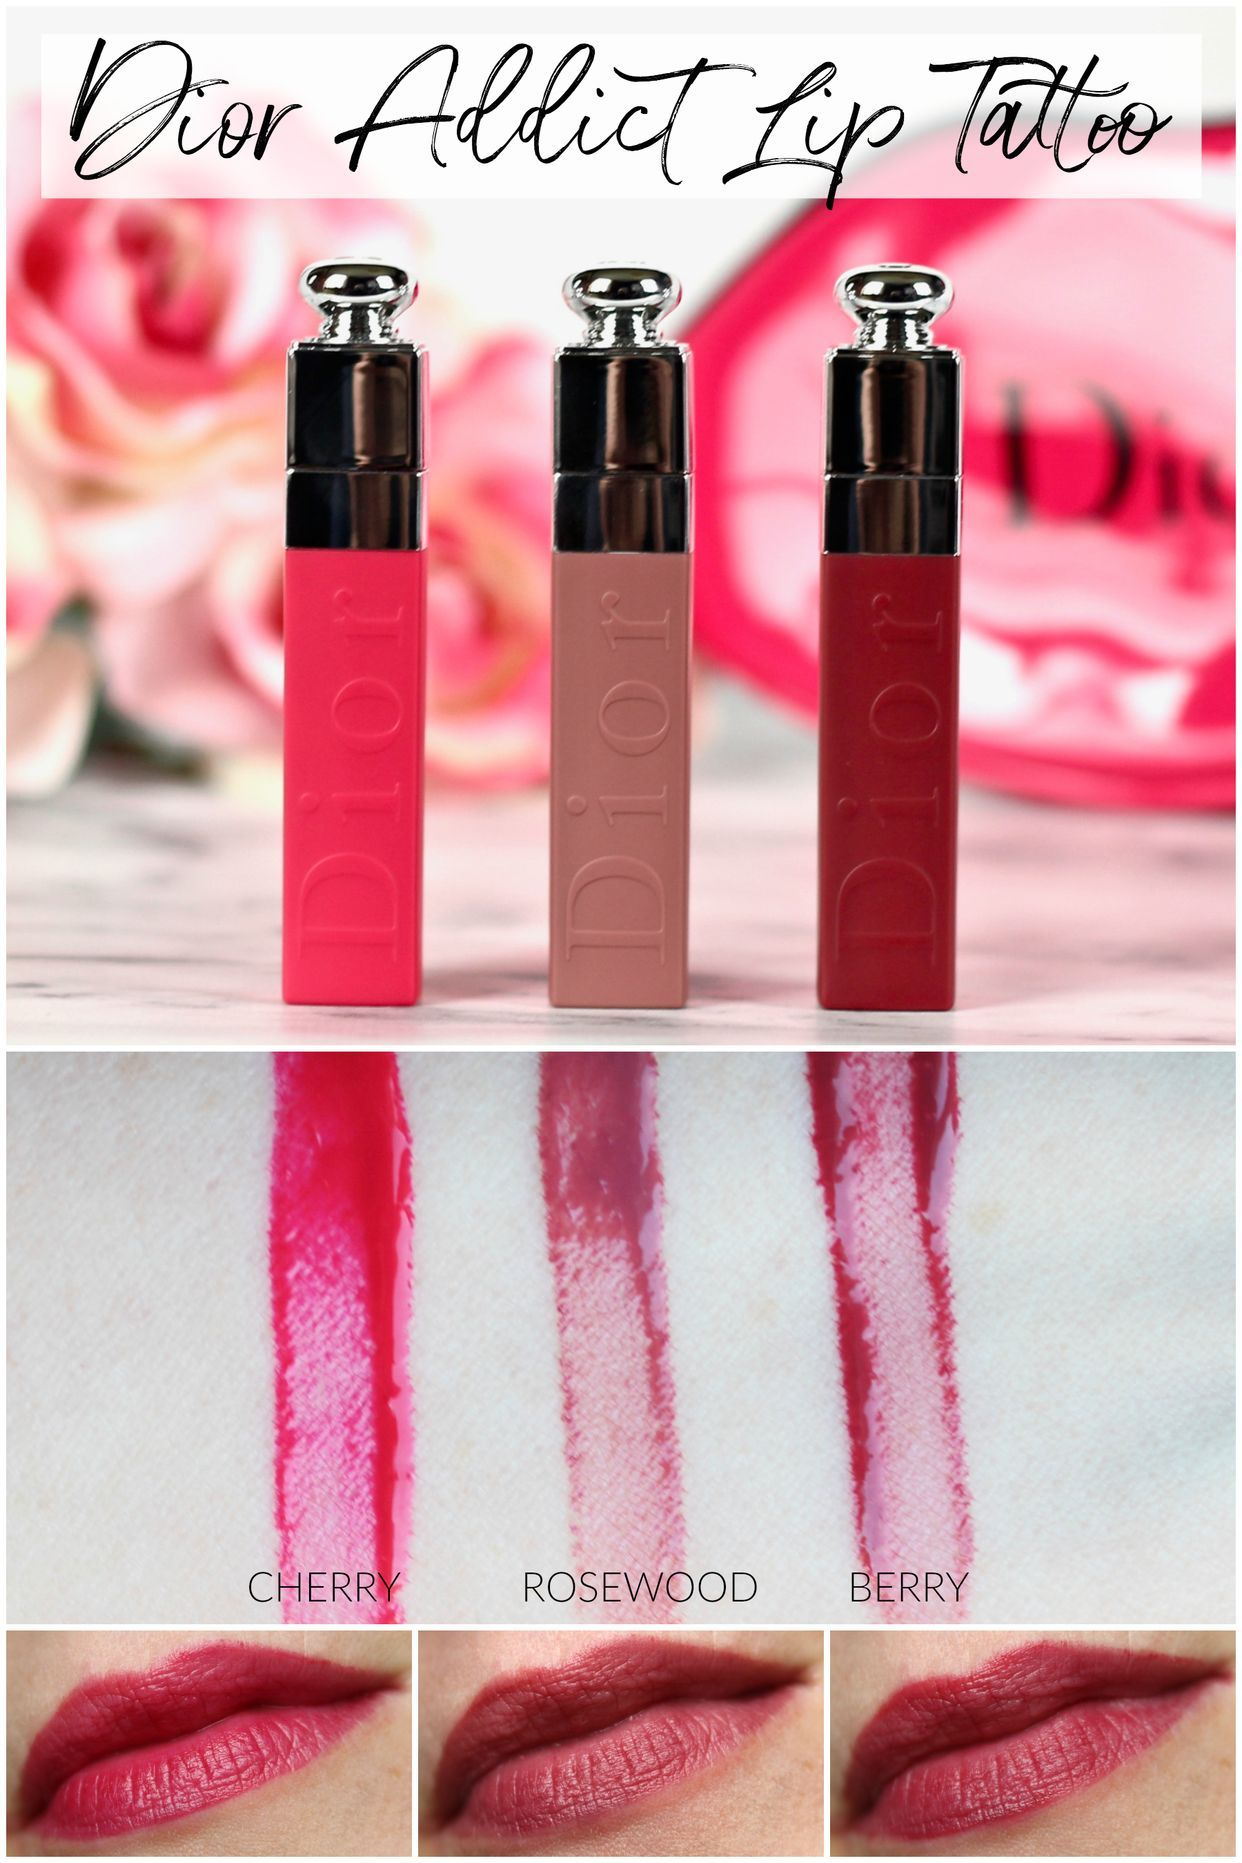 Dior Addict Lip Tattoo Review And Swatches Realizing Beauty